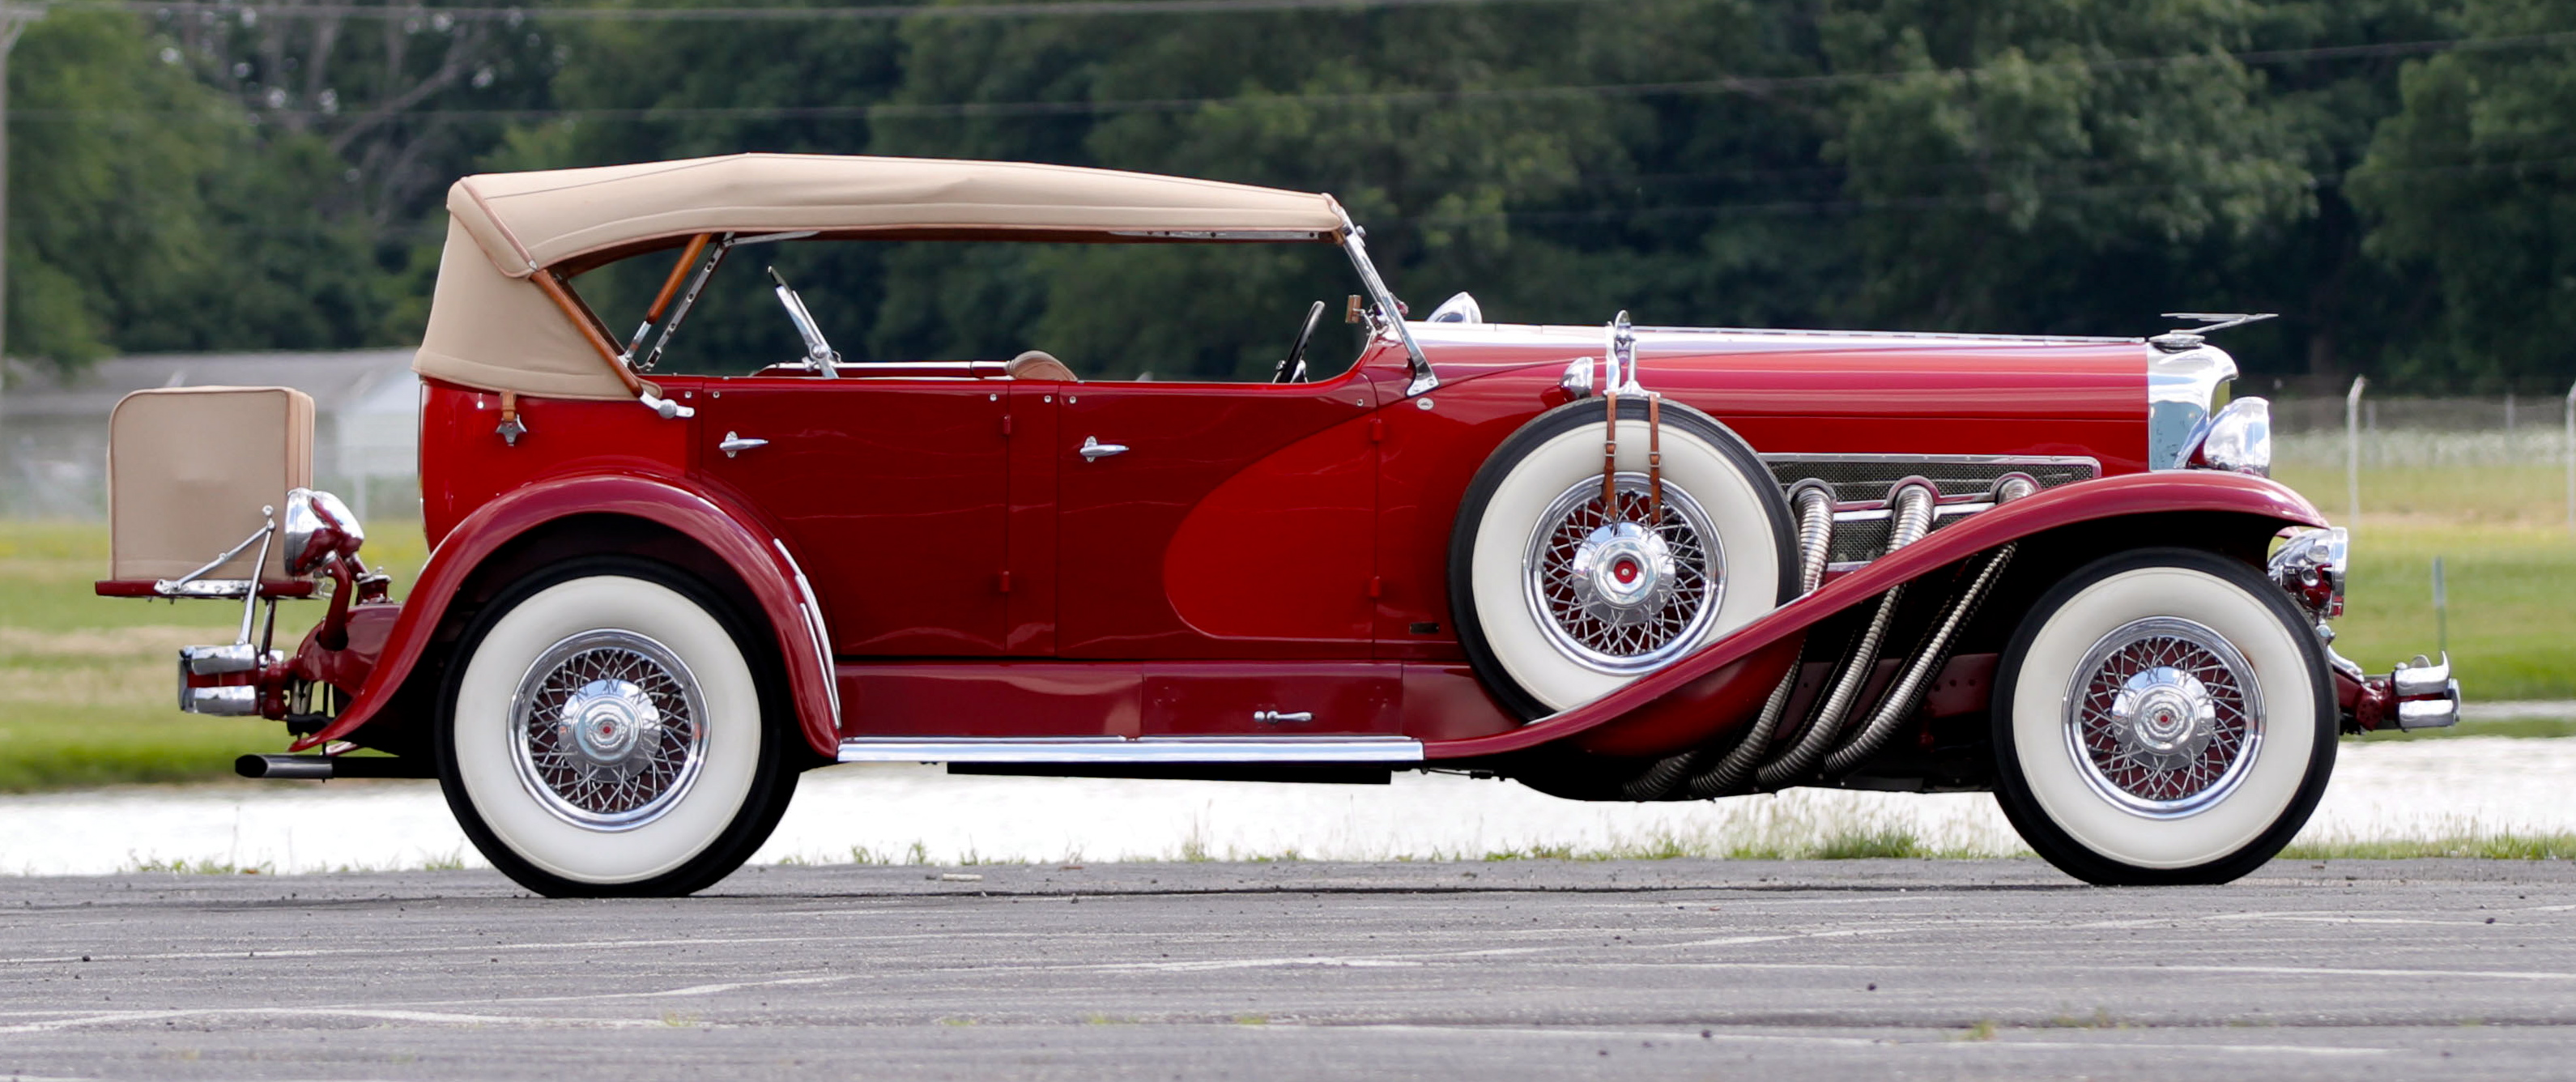 Auburn launches full fall schedule of auction action - ClassicCars ...